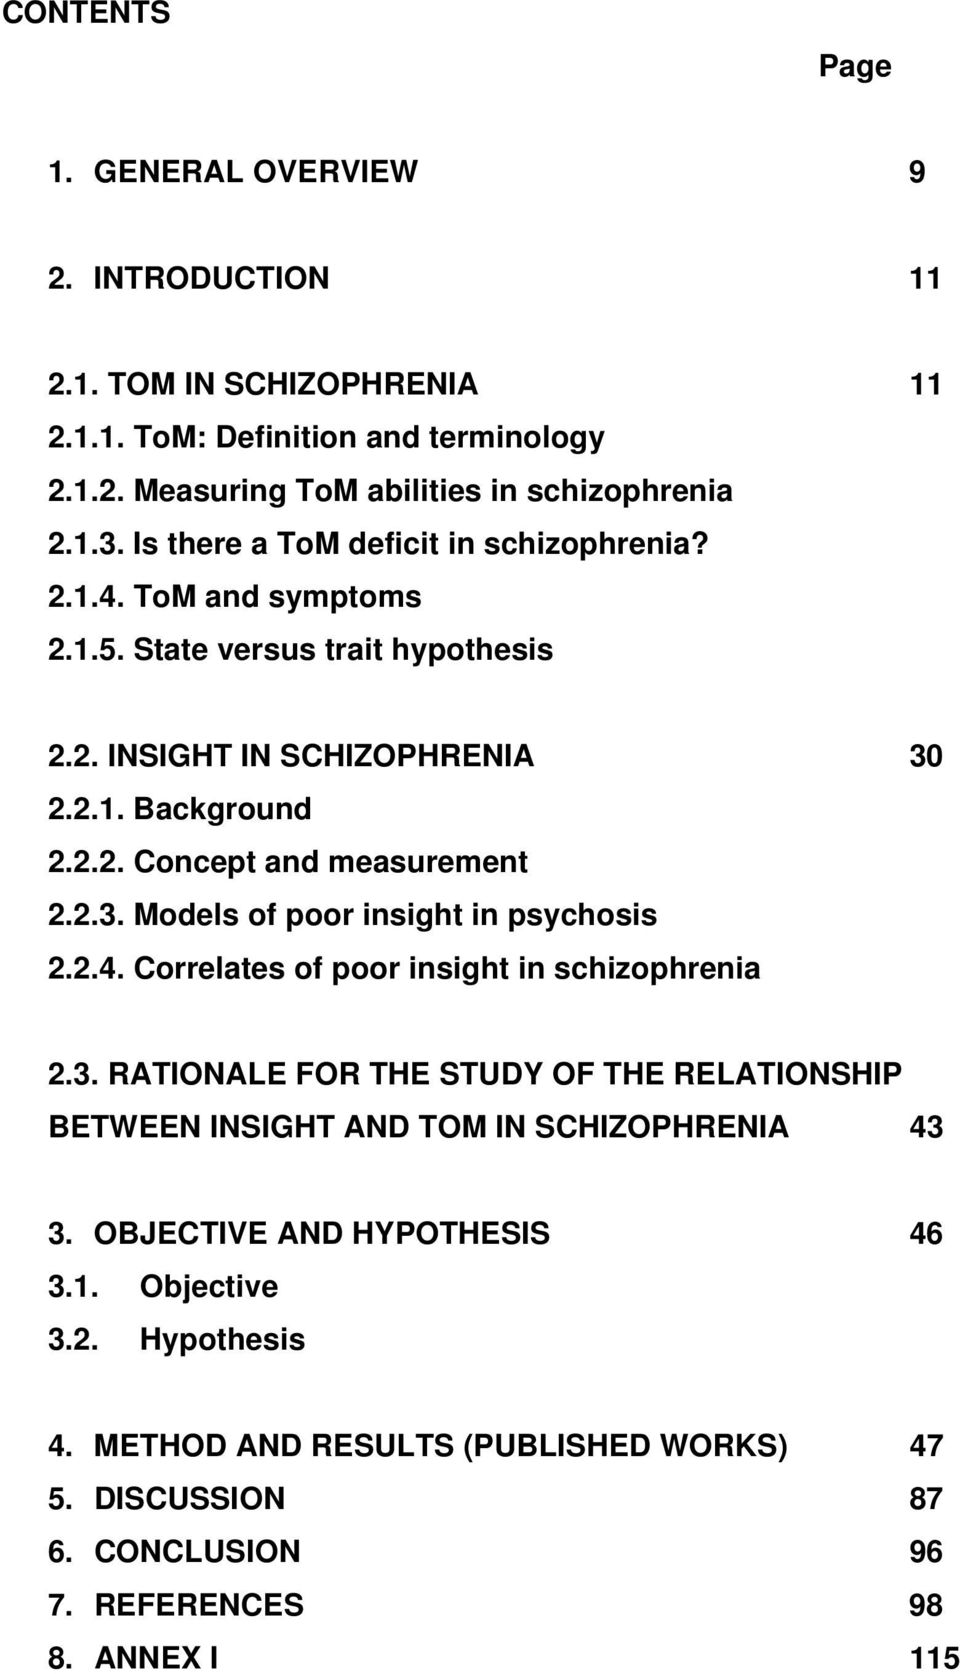 2.3. Models of poor insight in psychosis 2.2.4. Correlates of poor insight in schizophrenia 2.3. RATIONALE FOR THE STUDY OF THE RELATIONSHIP BETWEEN INSIGHT AND TOM IN SCHIZOPHRENIA 43 3.